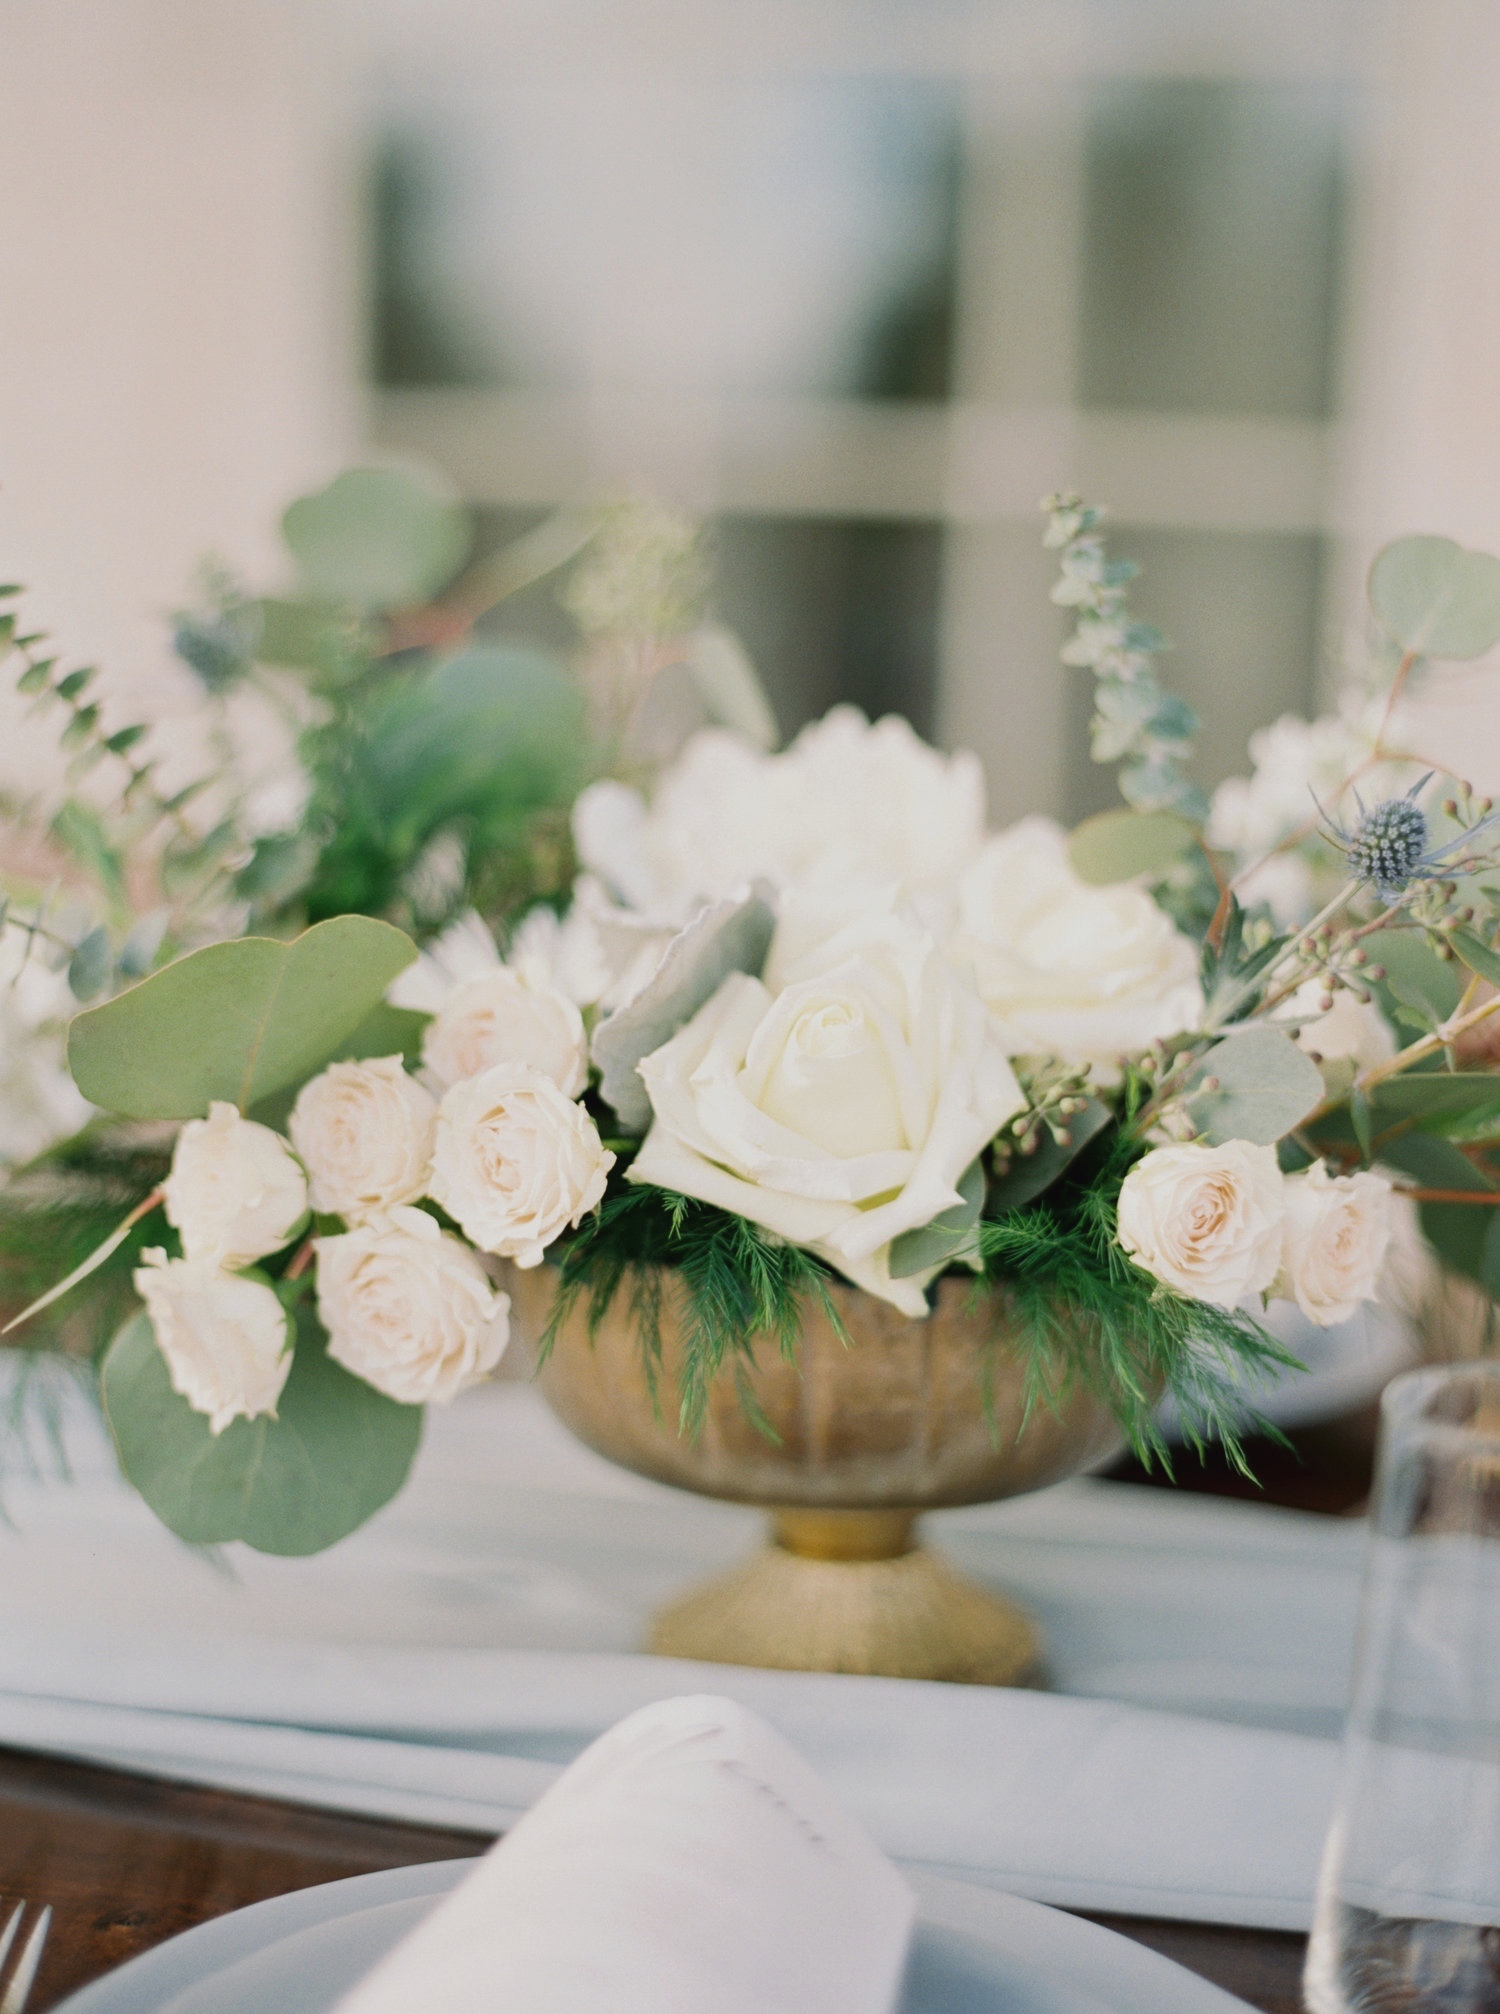 FLORAL DESIGN - Do you want gorgeous florals that don't cost an arm and a leg on your wedding day? Weddings by Weaver Floral Design has got you covered for a budget friendly and beautiful day. Let's chat!